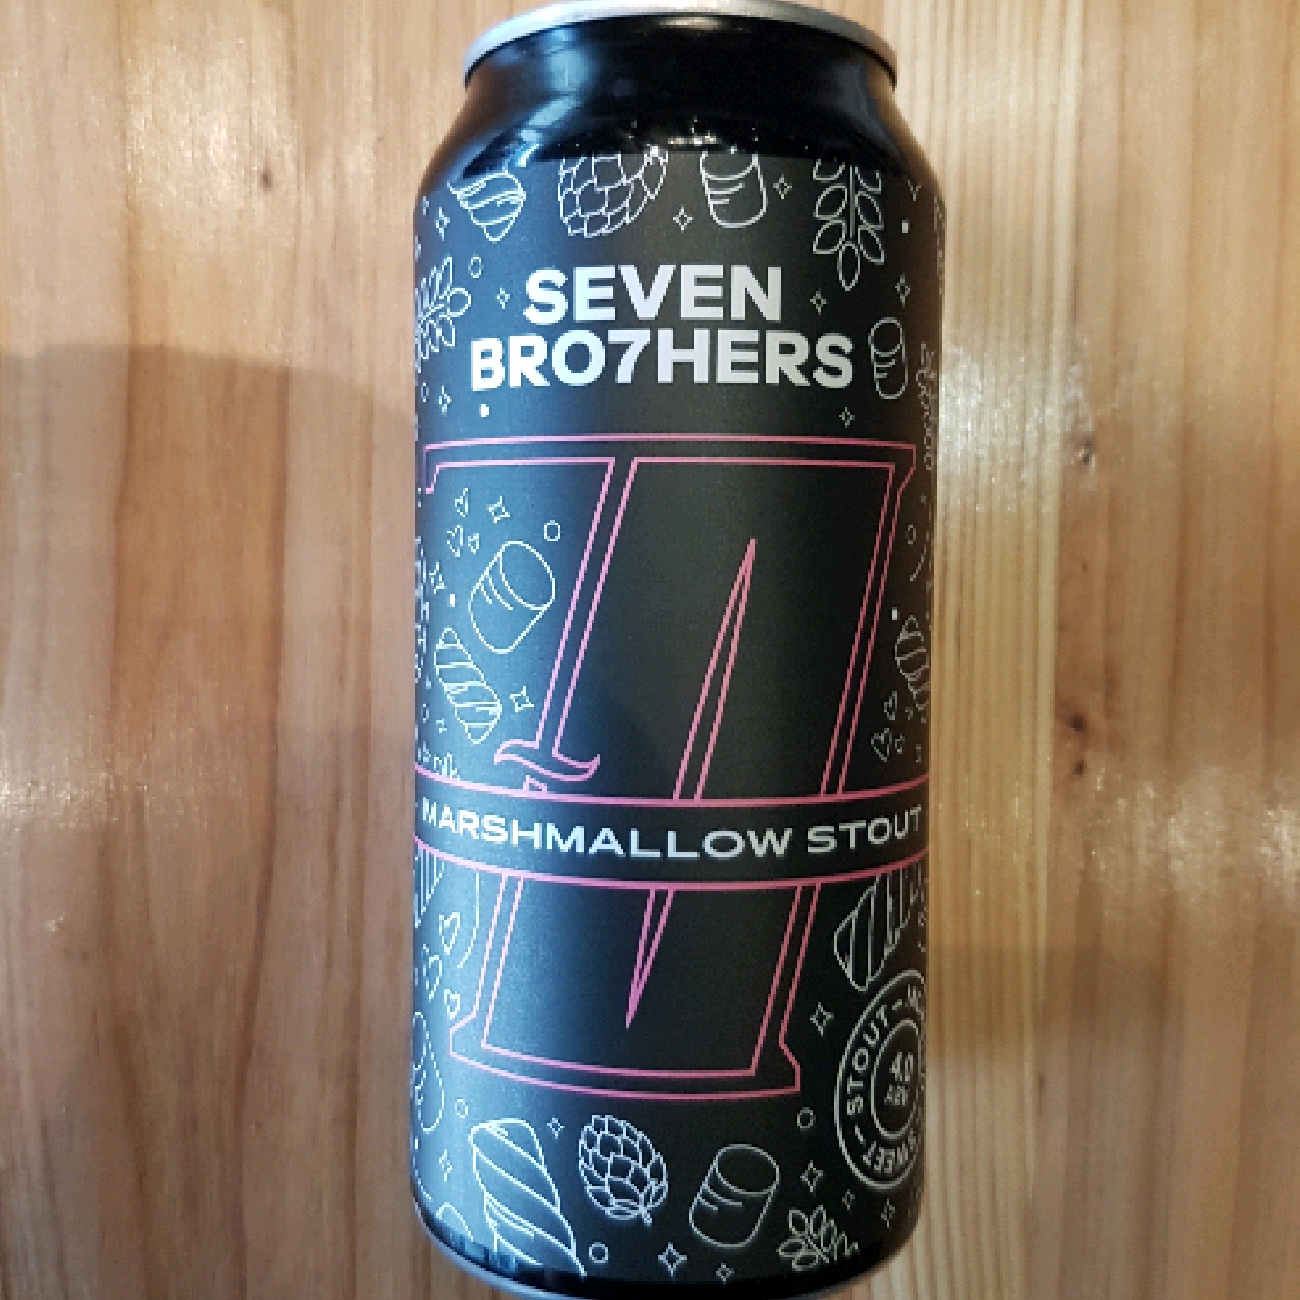 Seven Brothers Marshmallow Stout